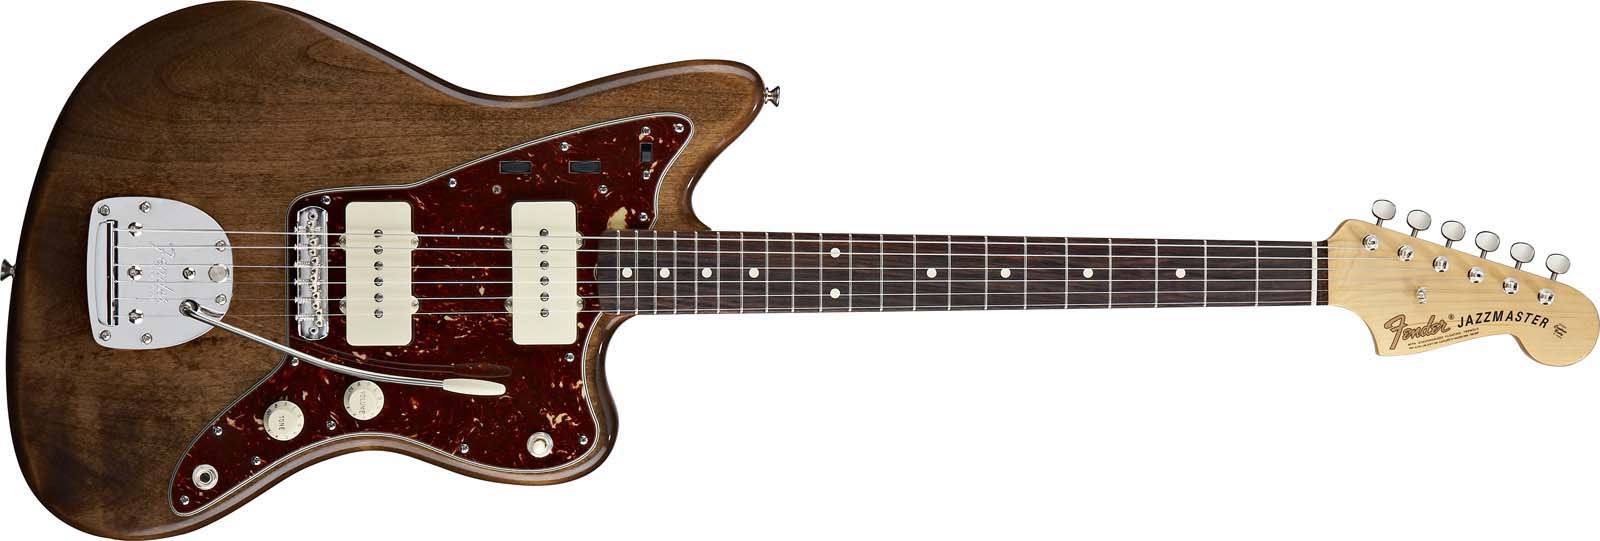 Fender Elvis Costello Jazzmaster